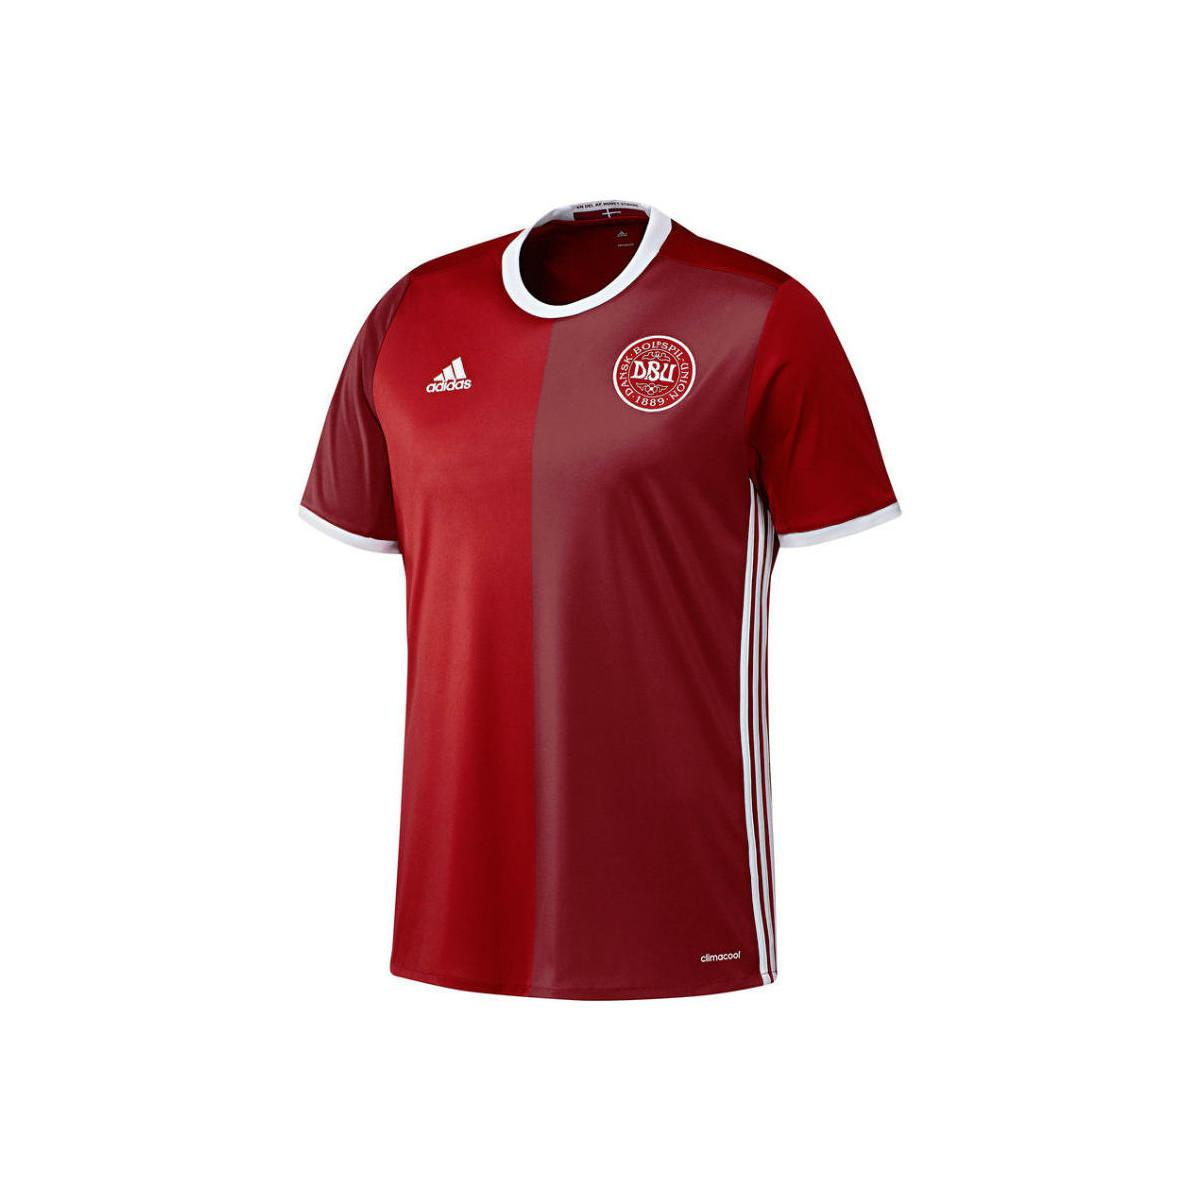 Adidas DBU T-Shirt slim red L